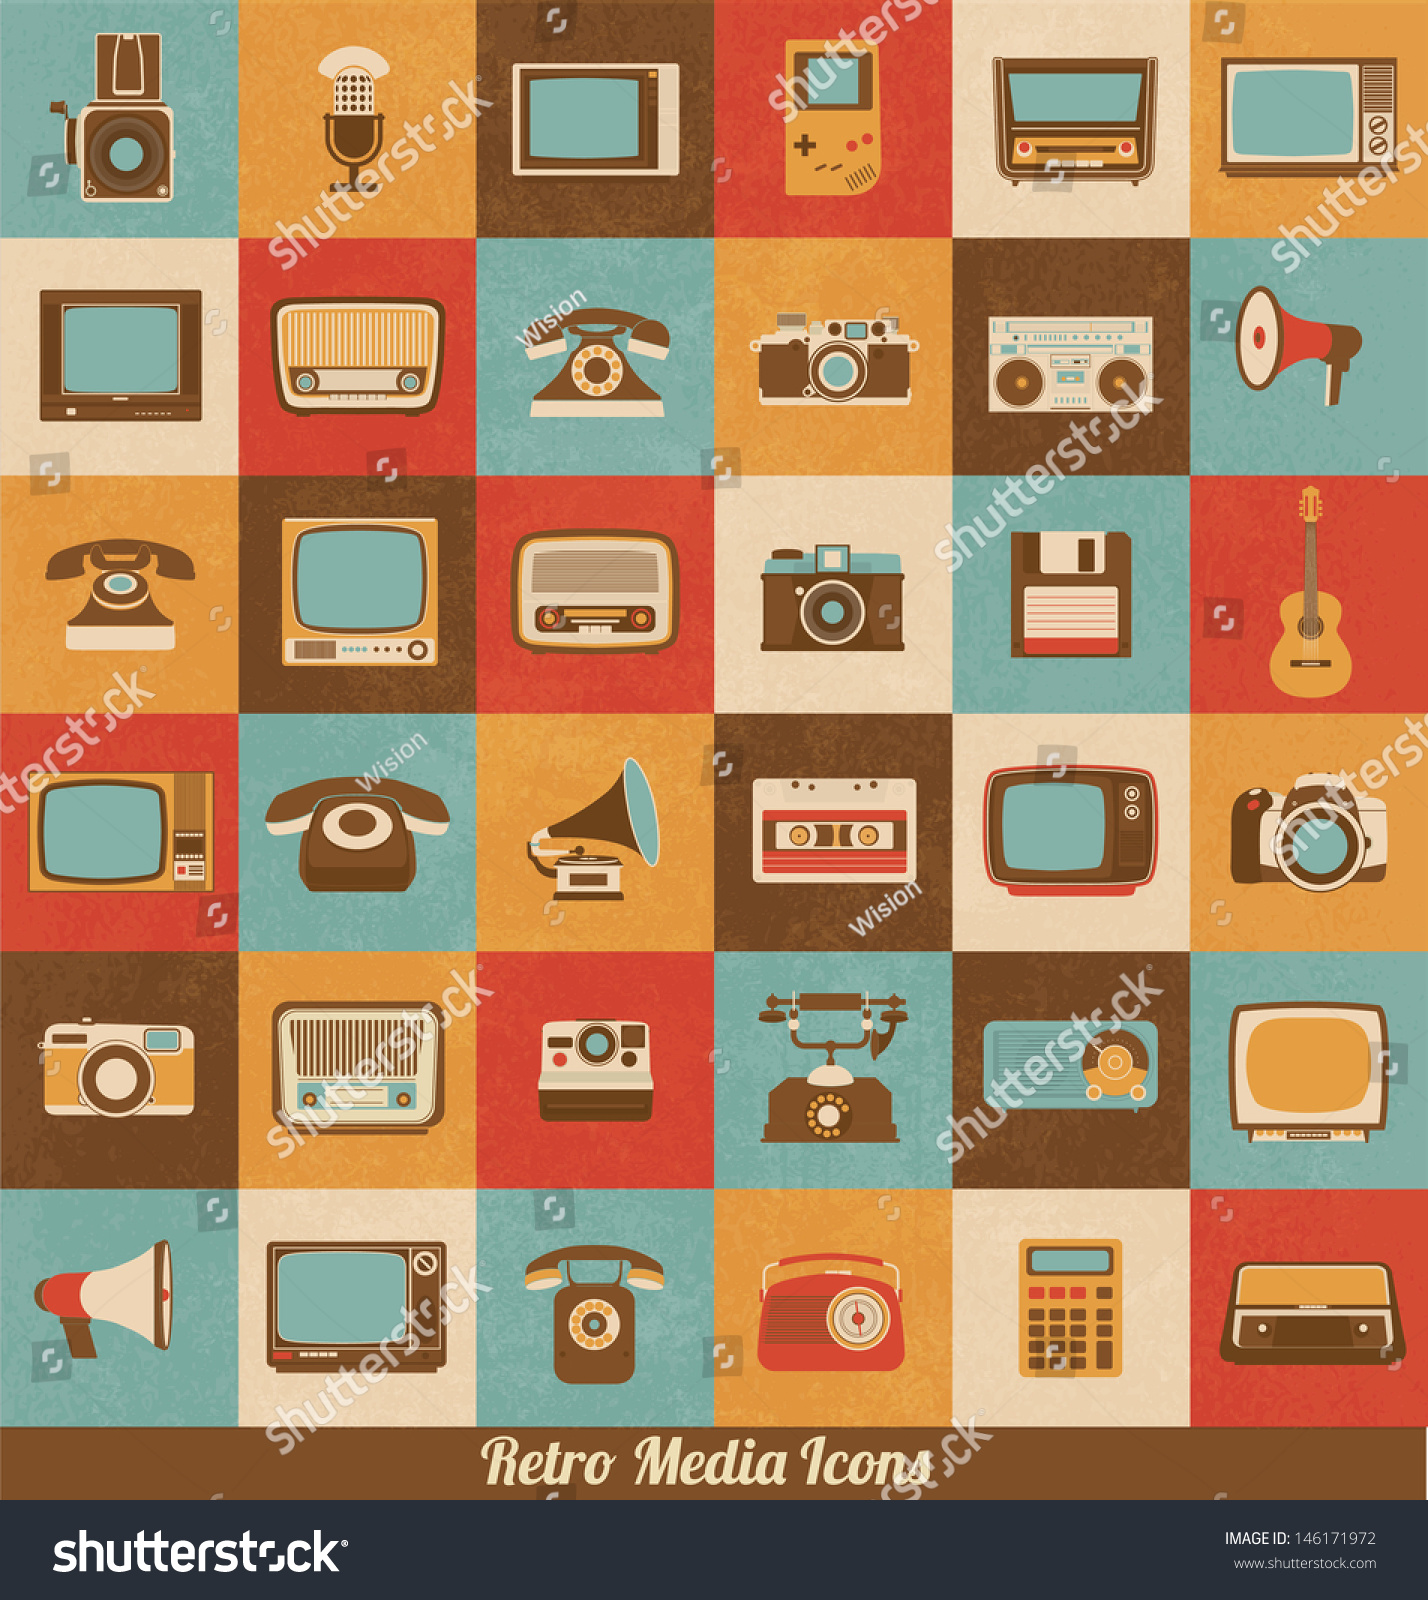 Retro Style Media Icons Vintage Elements Stock Vector